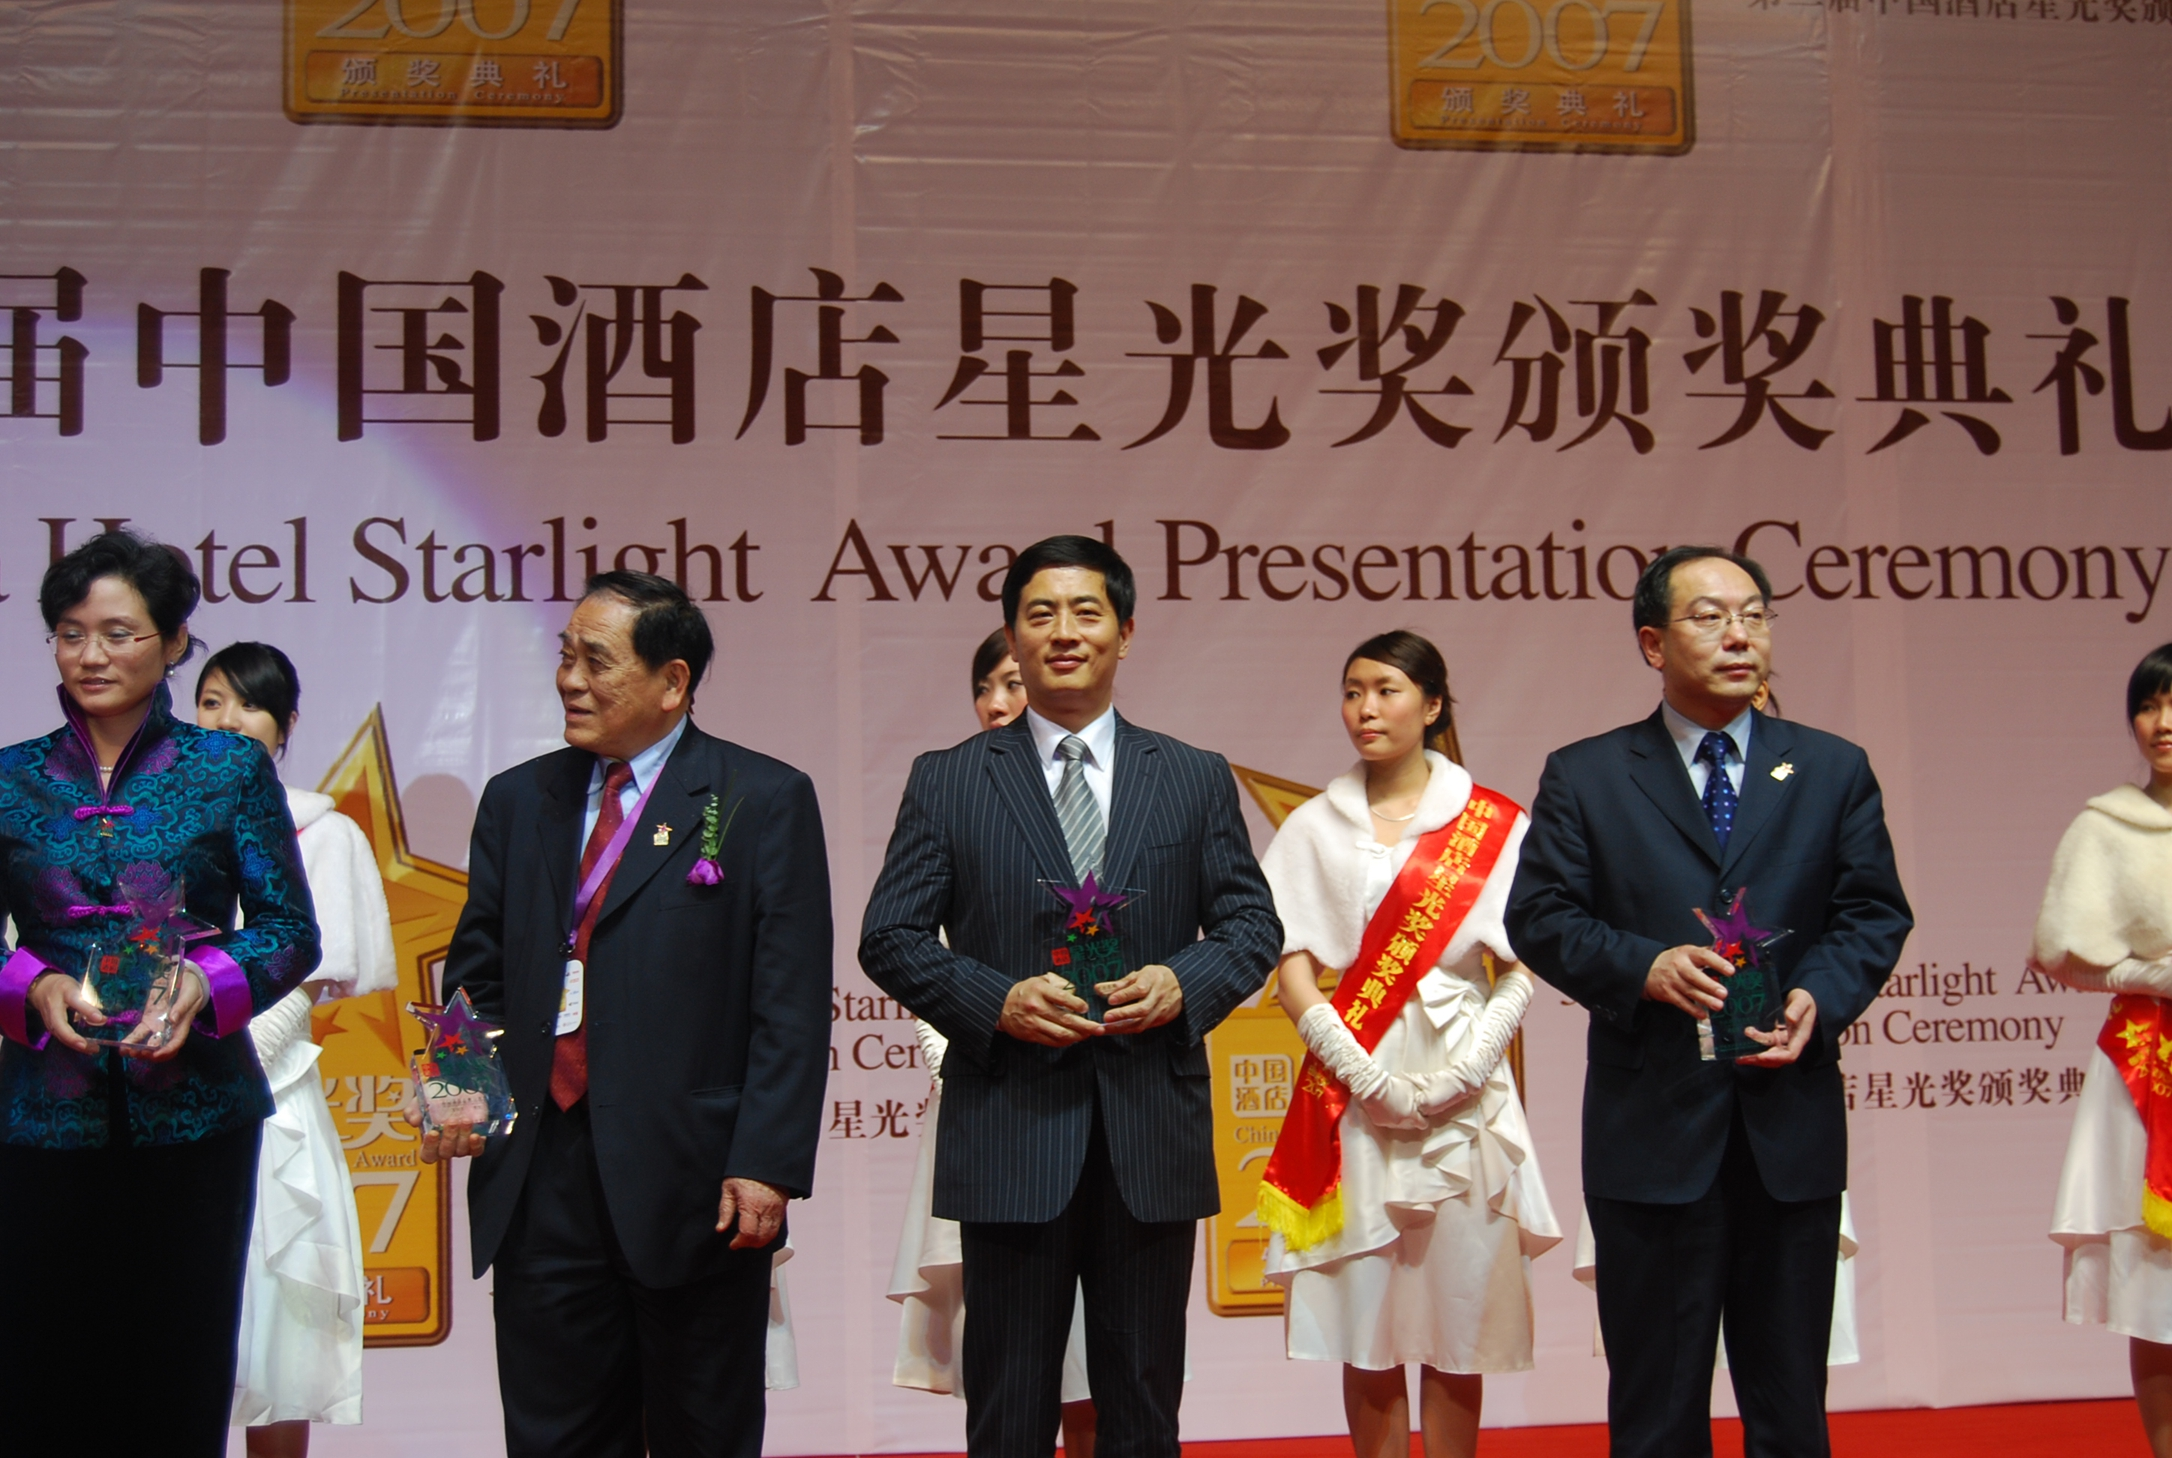 President Bin Chen attends the China Hotel Starlight Awards